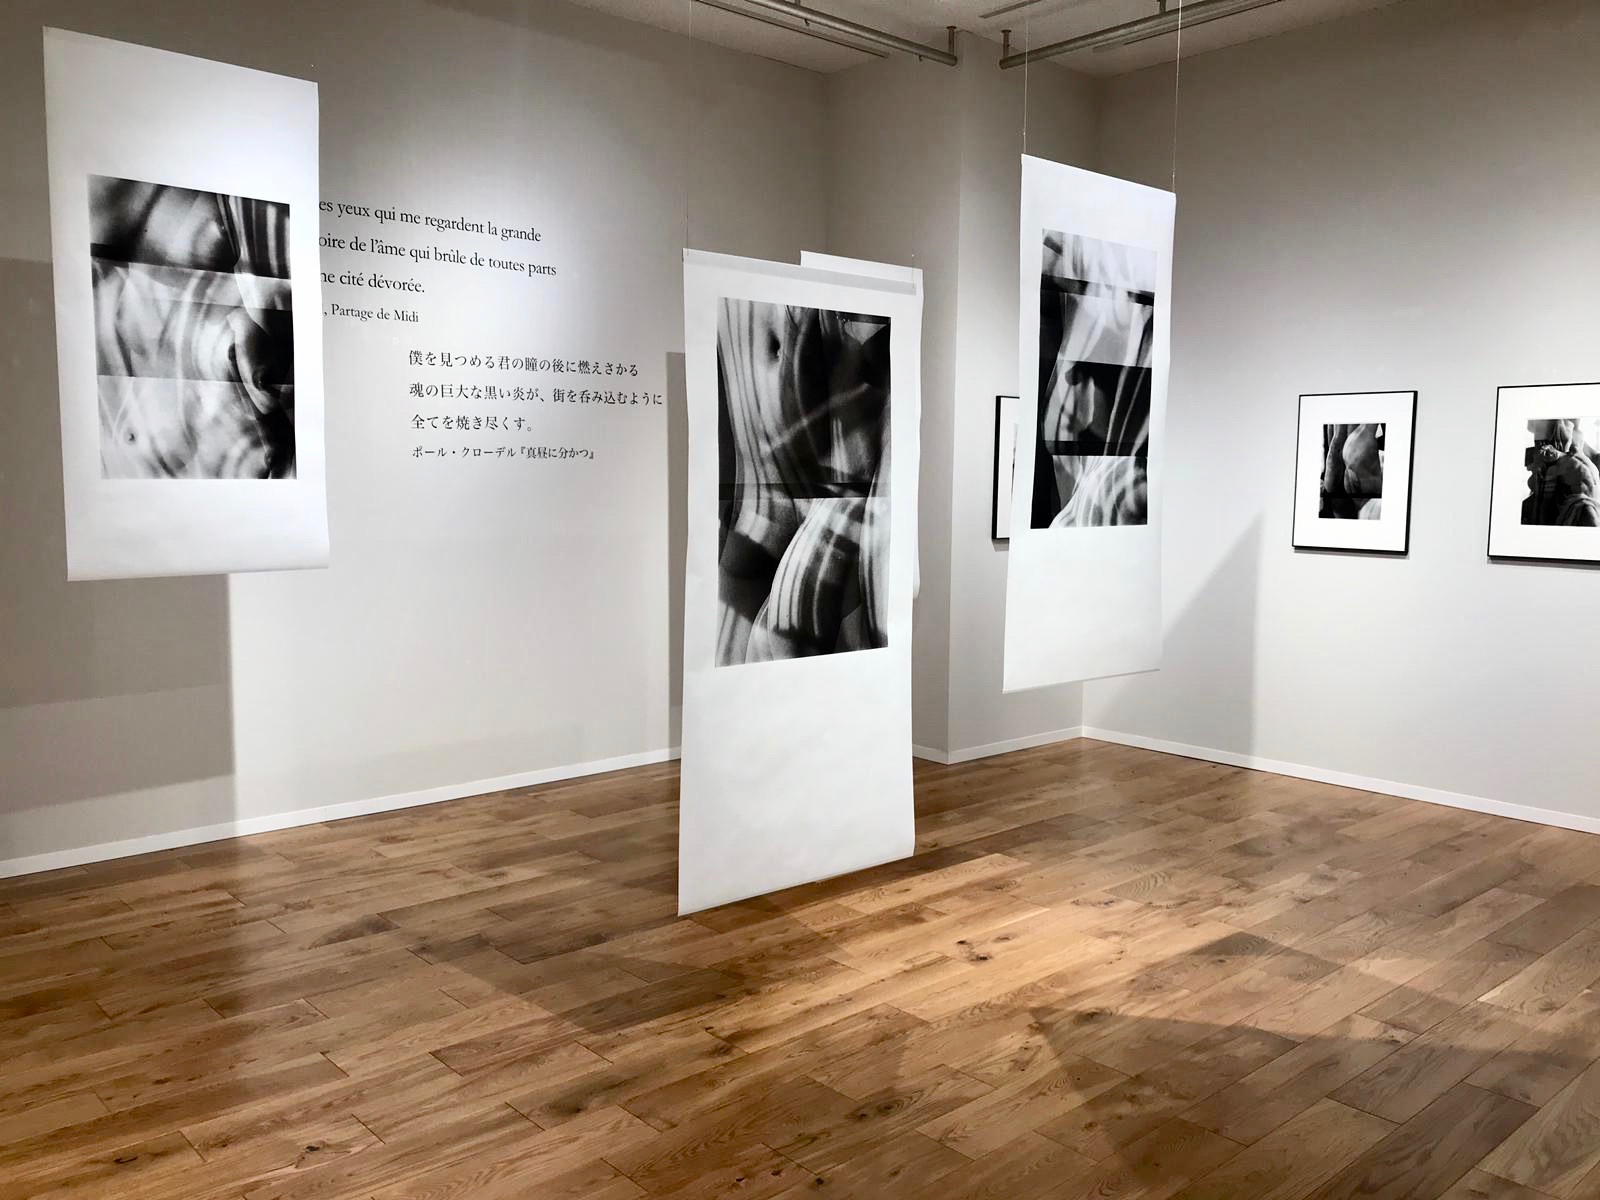 Vue d'exposition Transfiguration    Galerie Wacoal Study Hall, Kyoto    Kg+ / Kyotographie 2019